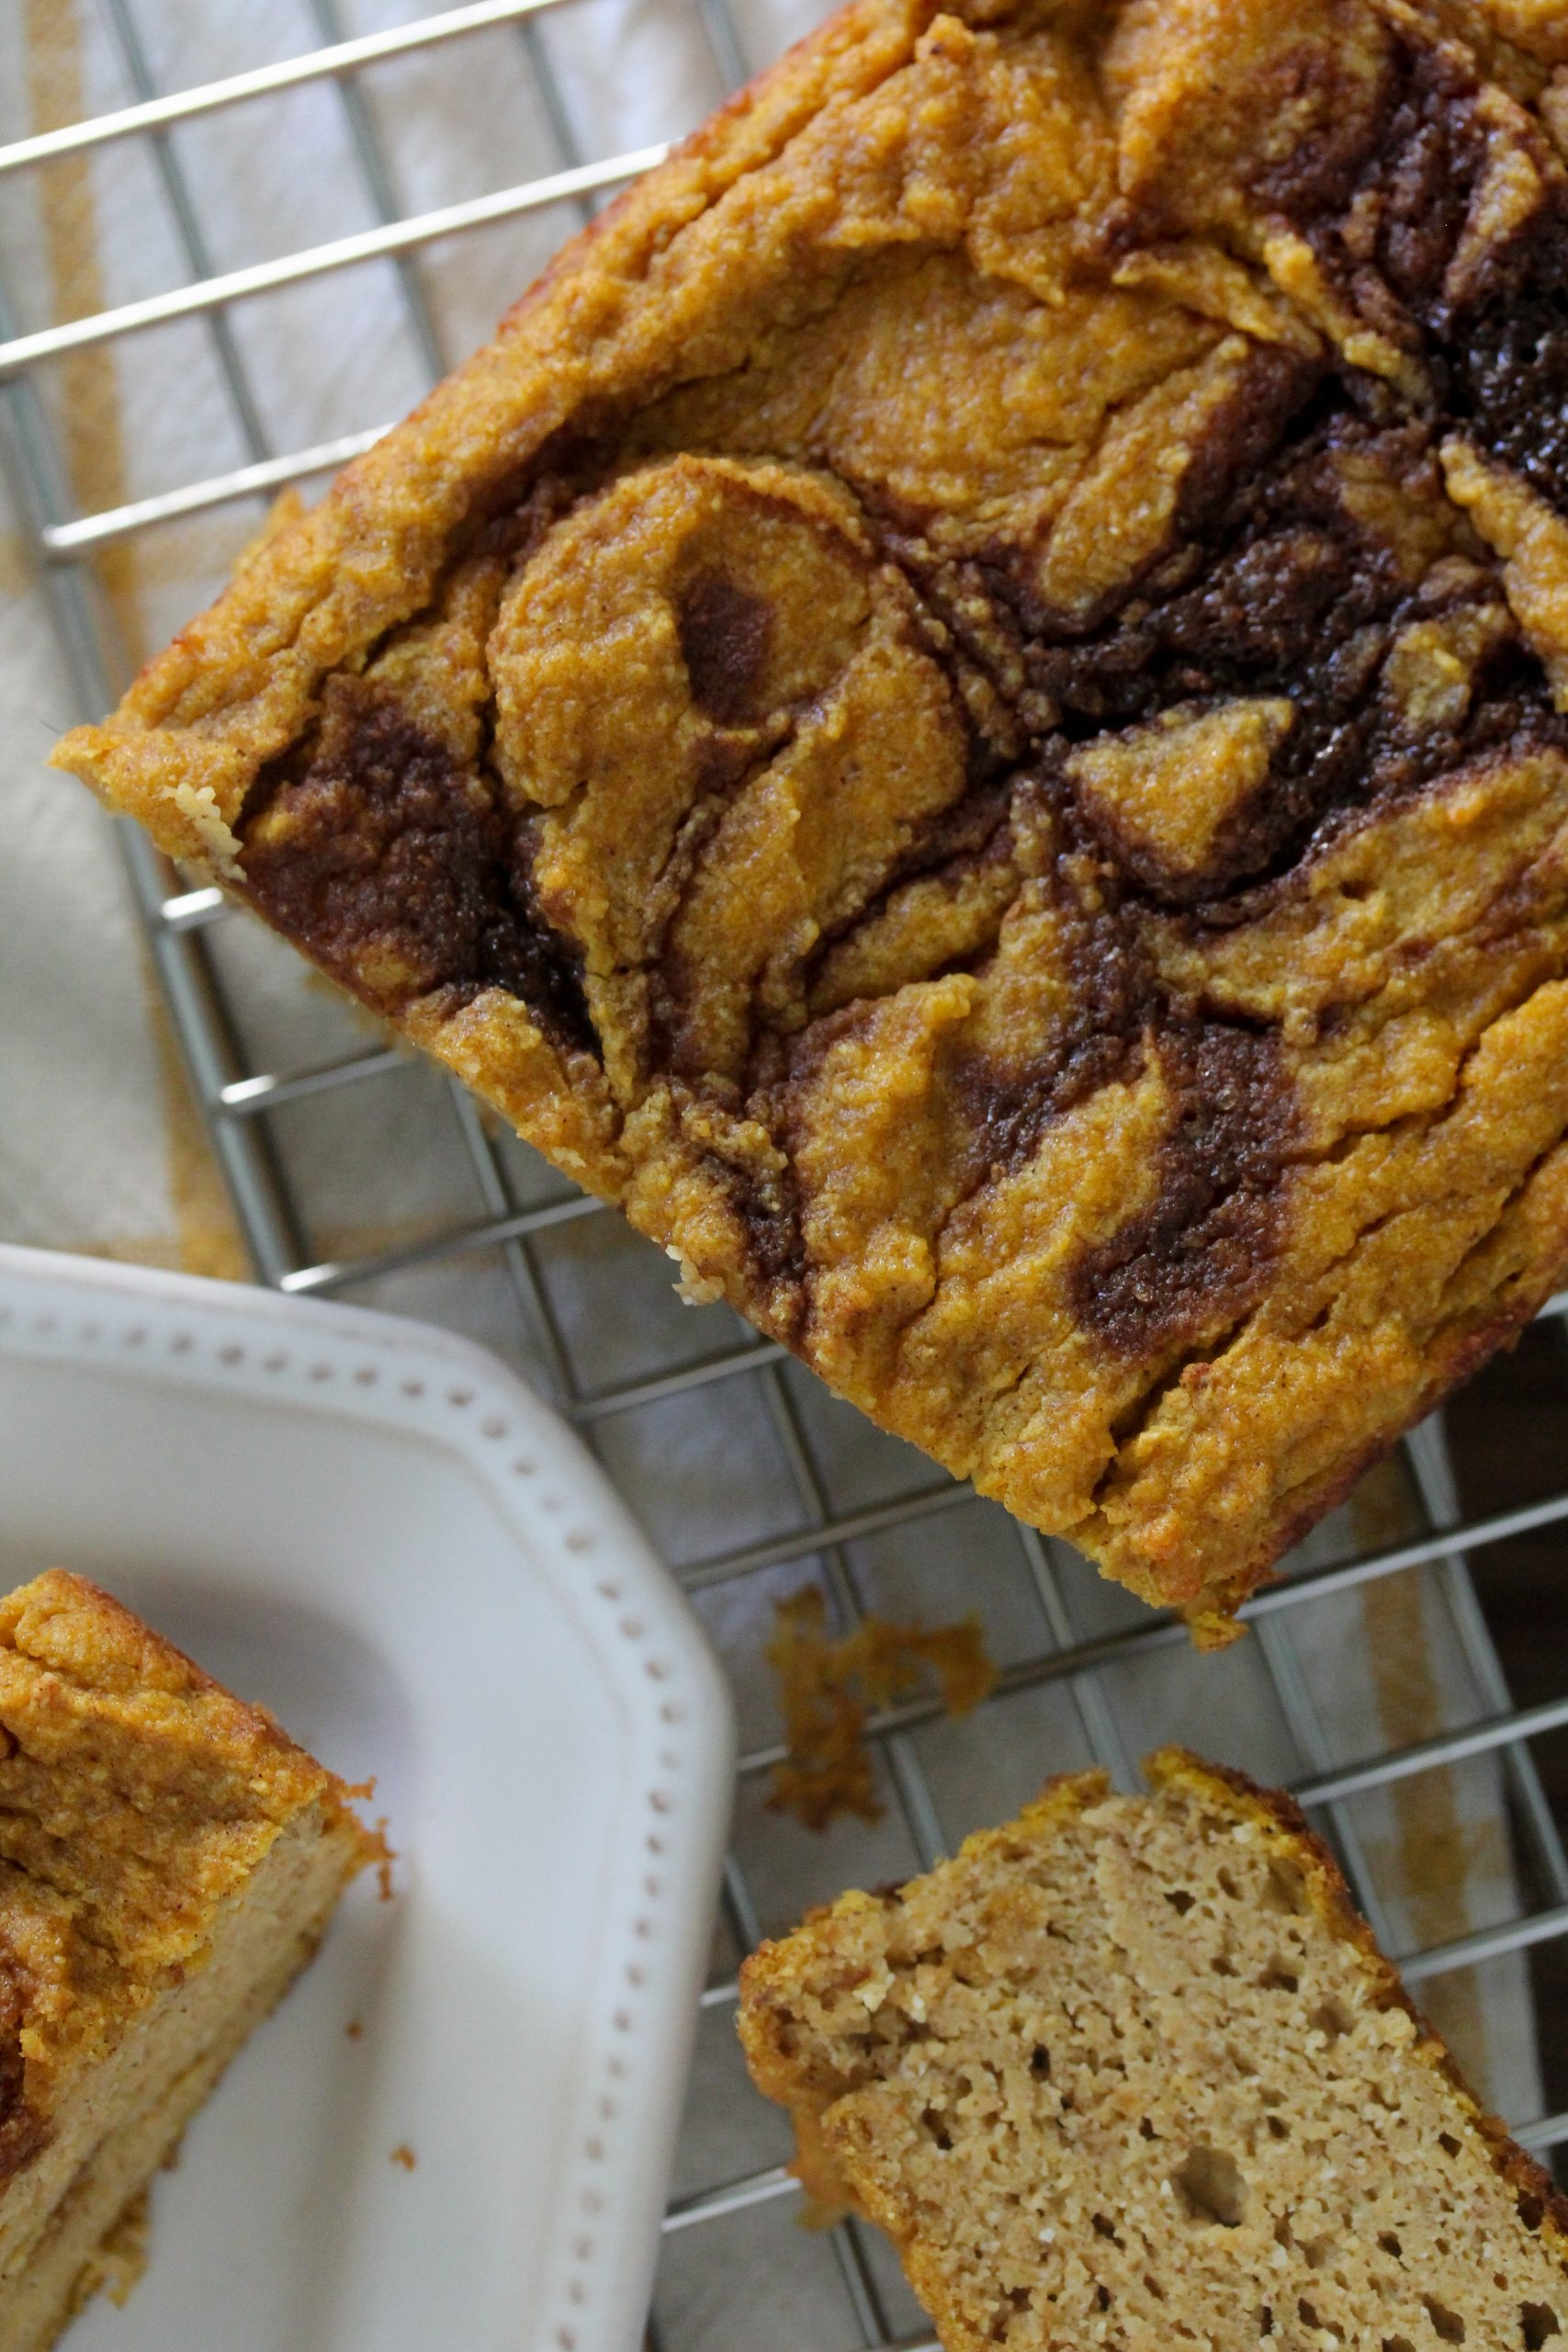 Grain-Free Cinnamon Swirl Pumpkin Bread from The Whole Smiths. It's paleo, grain-free and delicious!